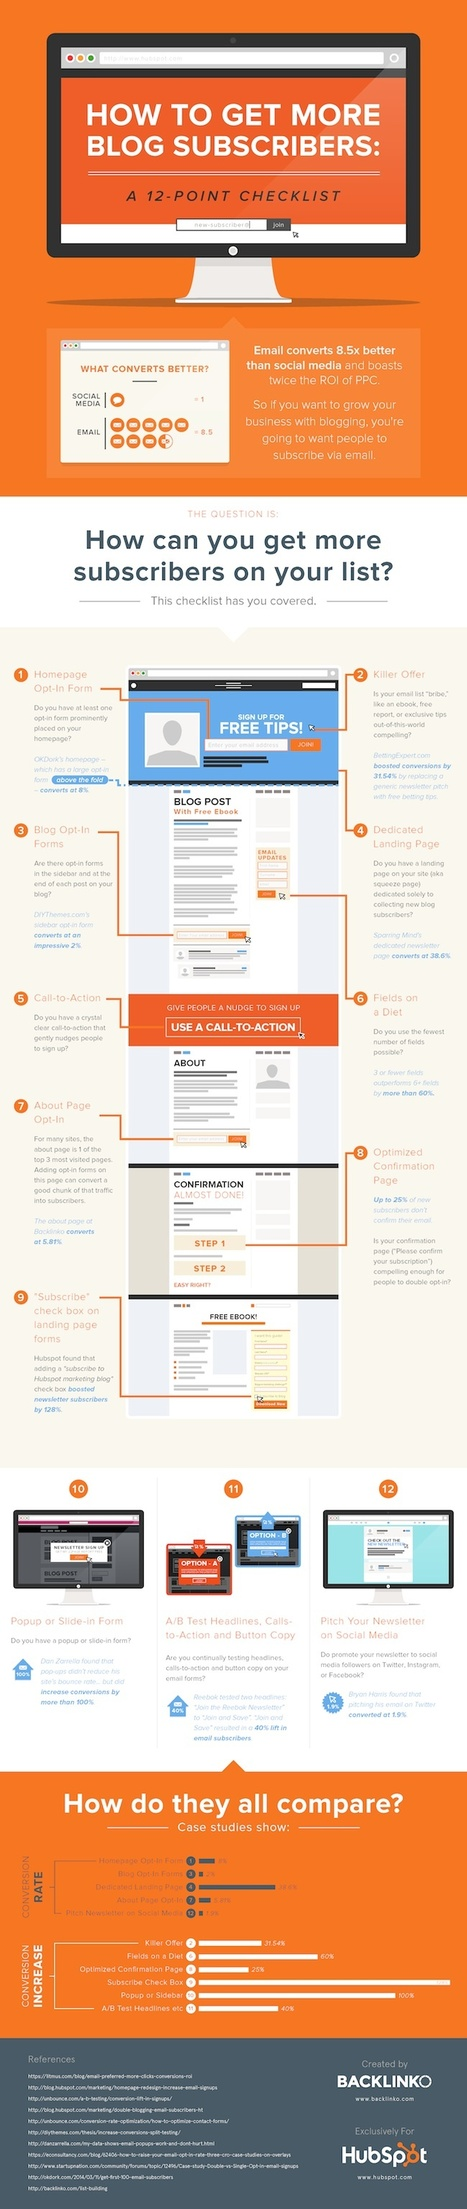 12 Ways to Get More Blog Subscribers [Infographic] | MarketingHits | Scoop.it